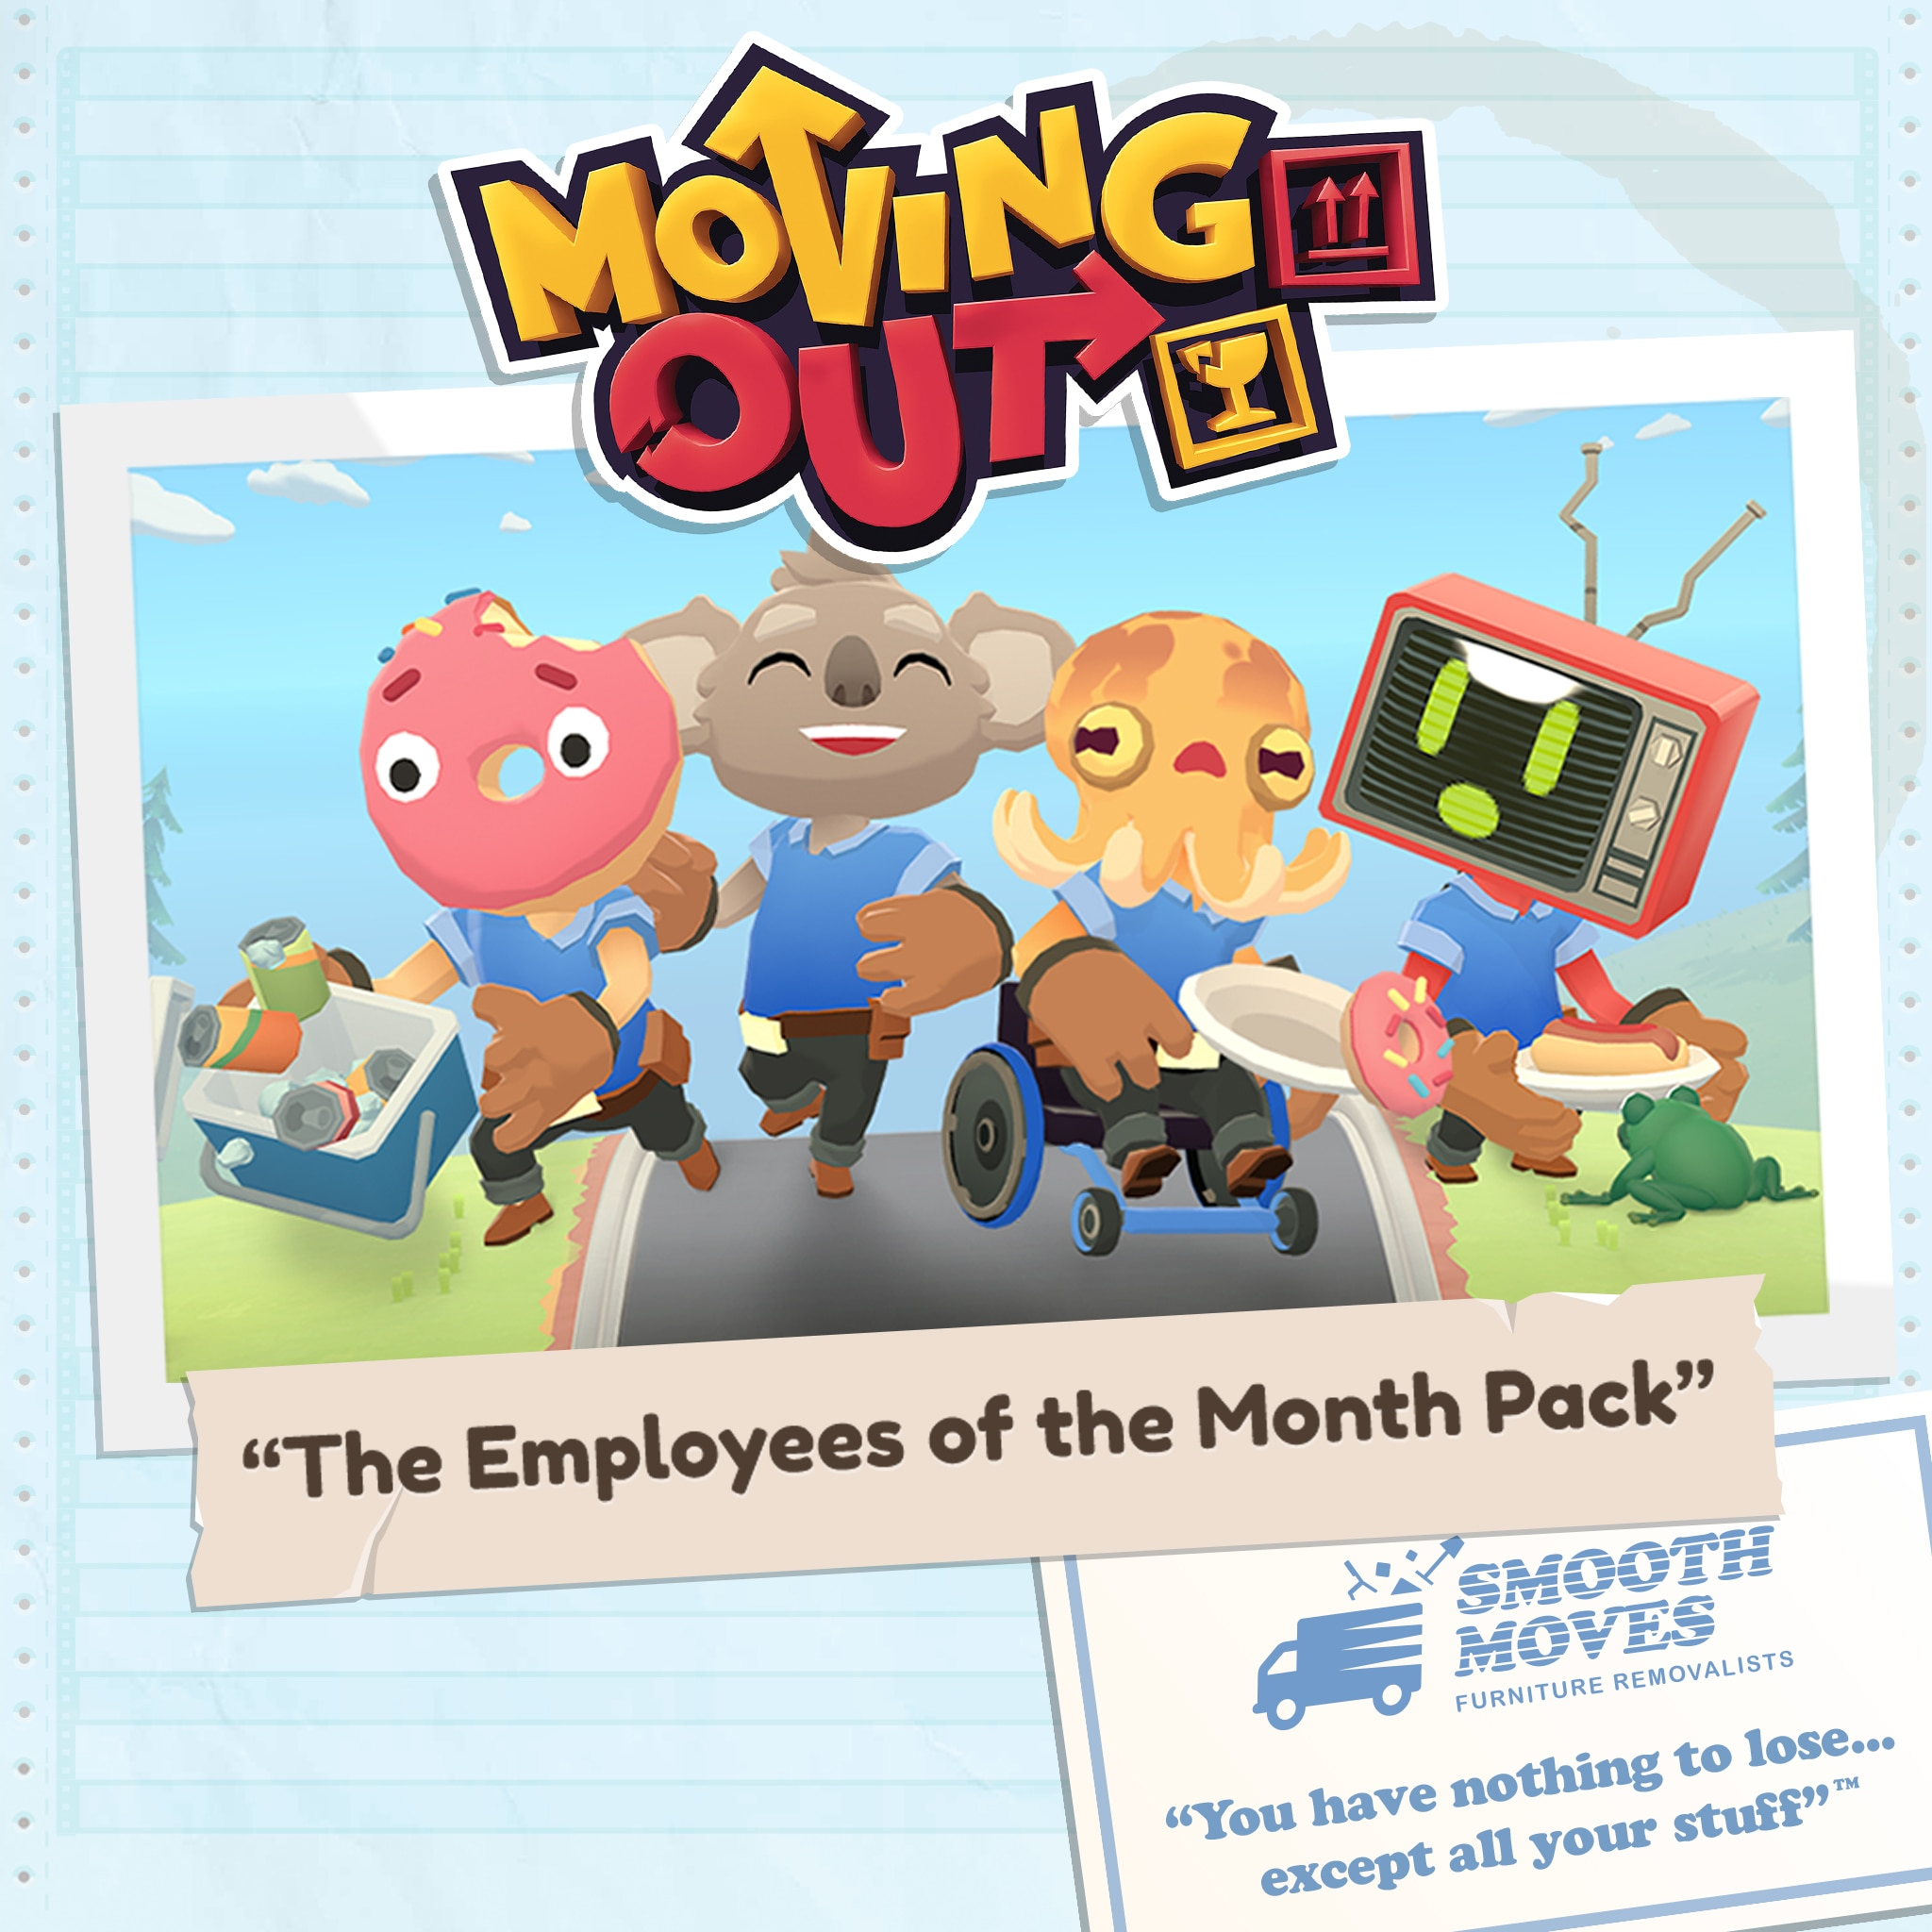 Moving Out - The Employees of the Month Pack